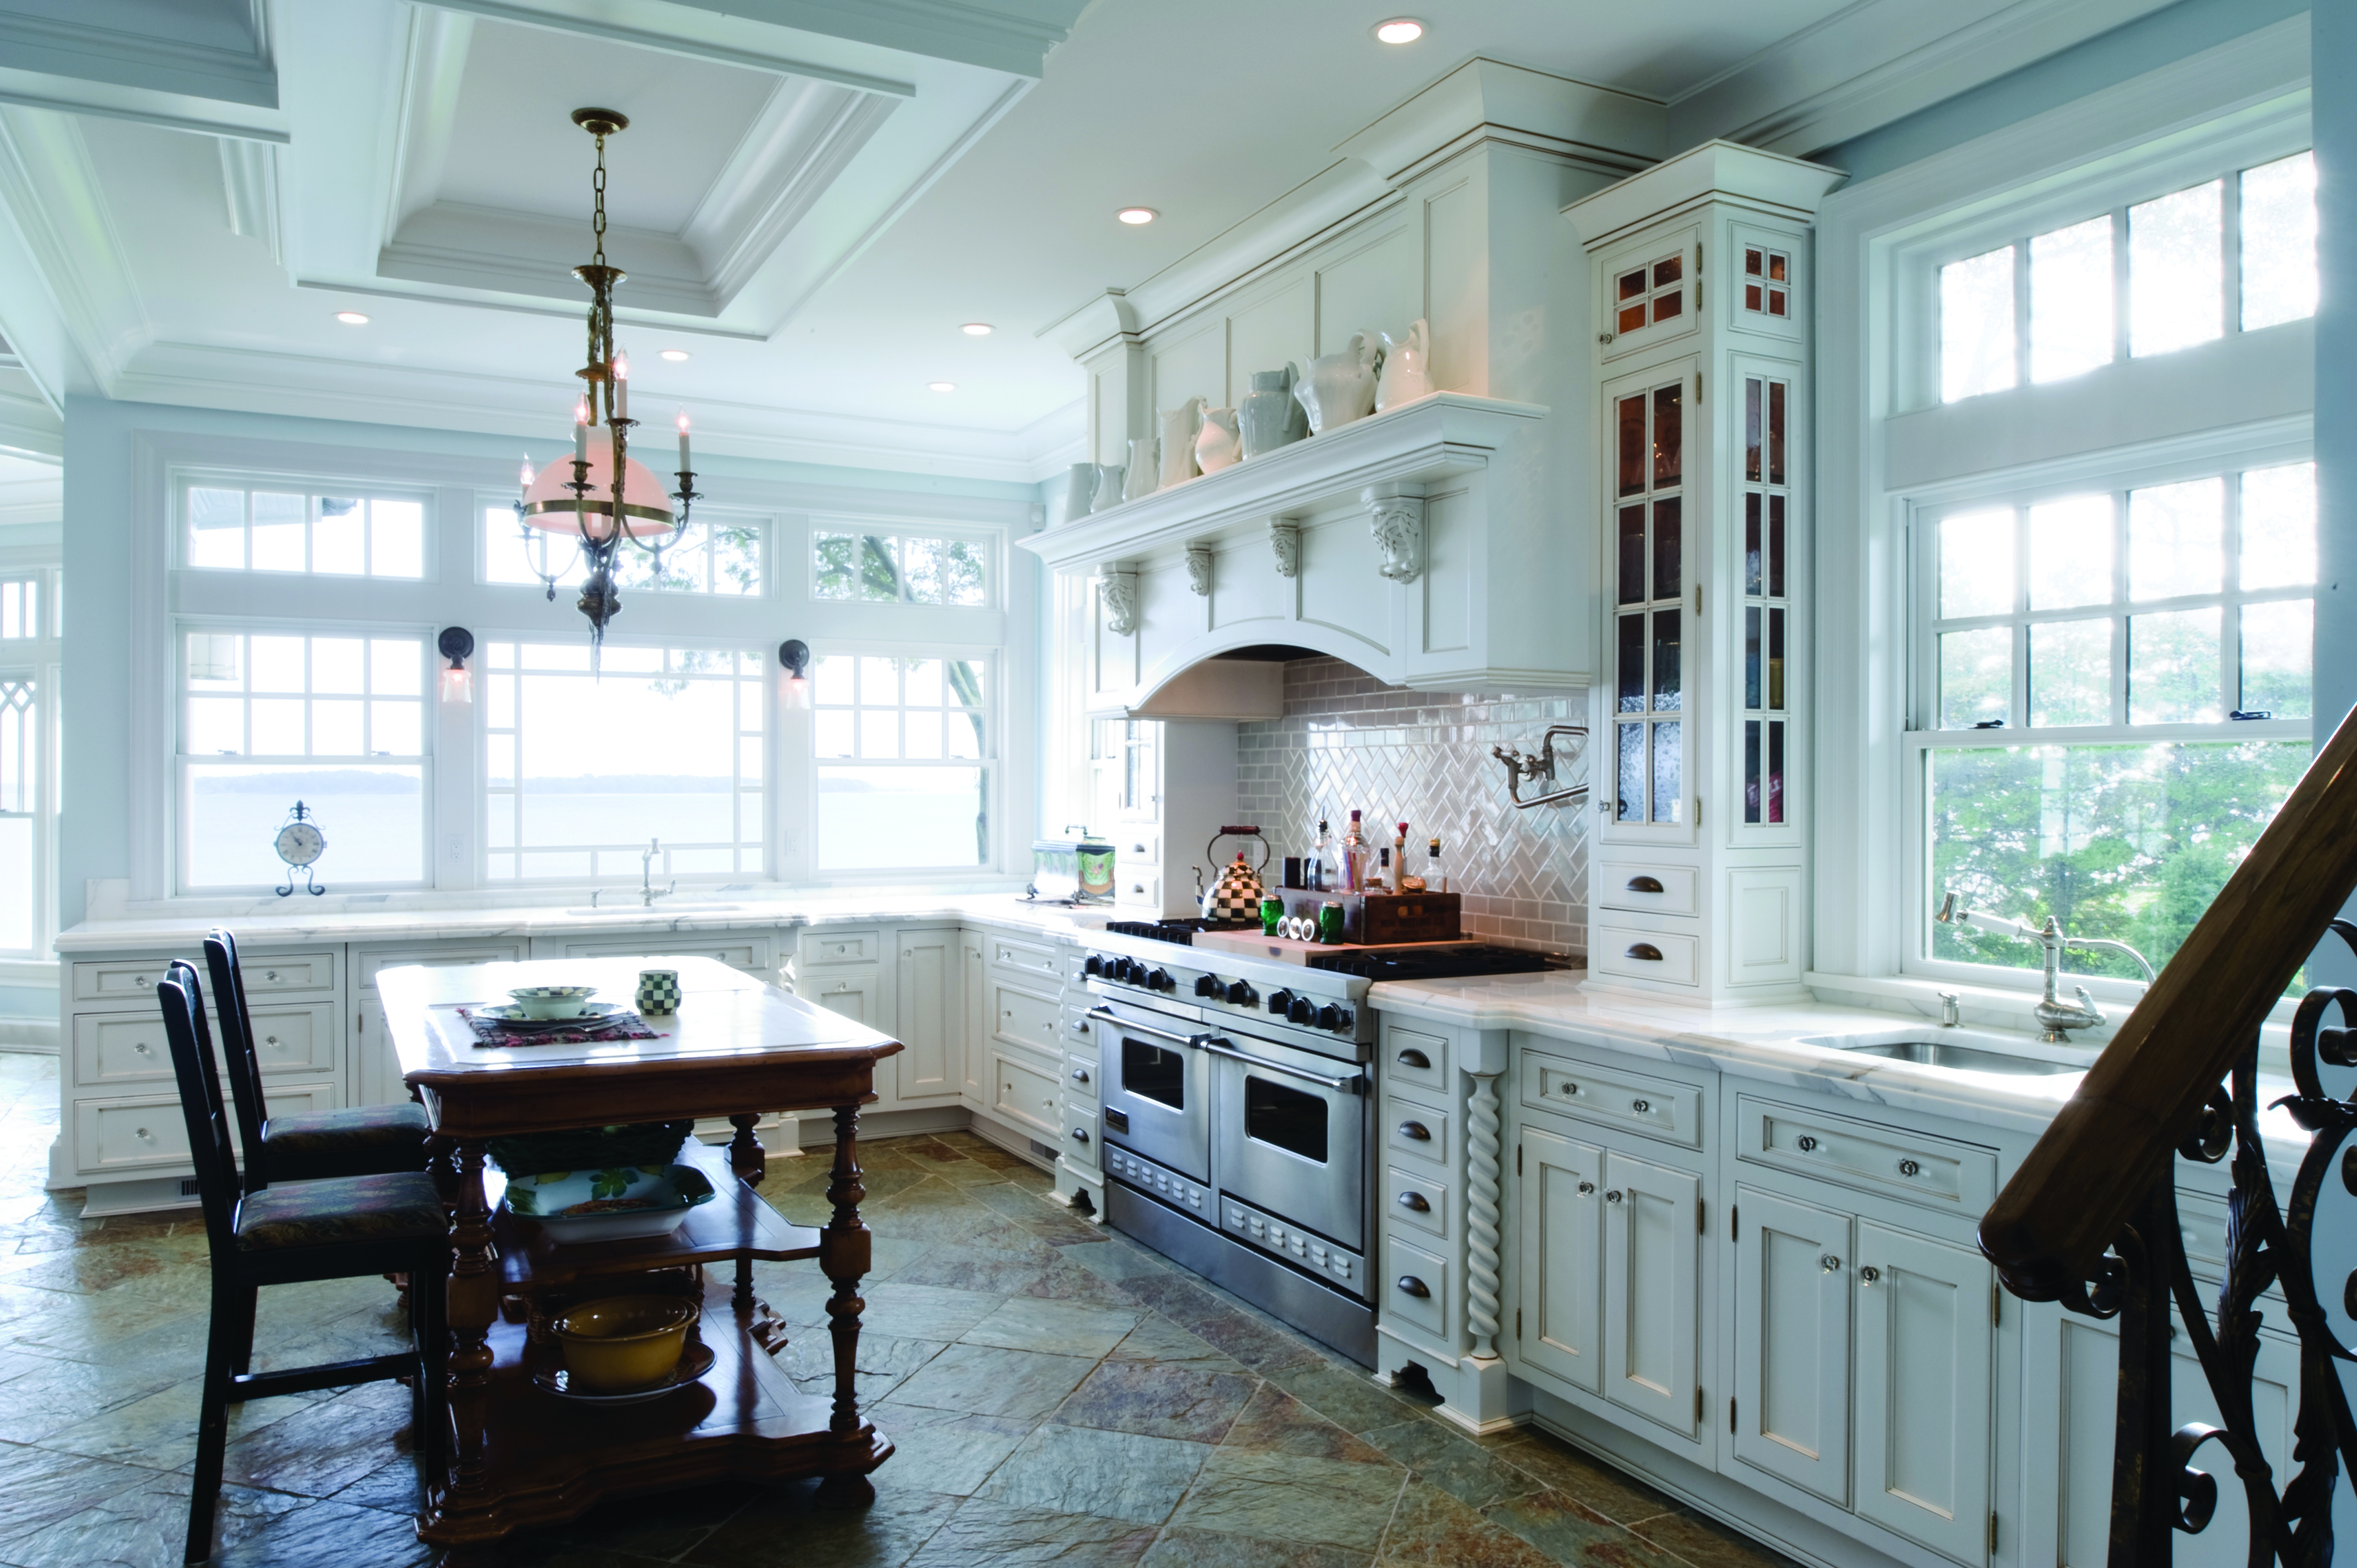 Kitchen Cabinets Concord Nhall about kitchens concord nh wolfeboro nh and kennebunk me